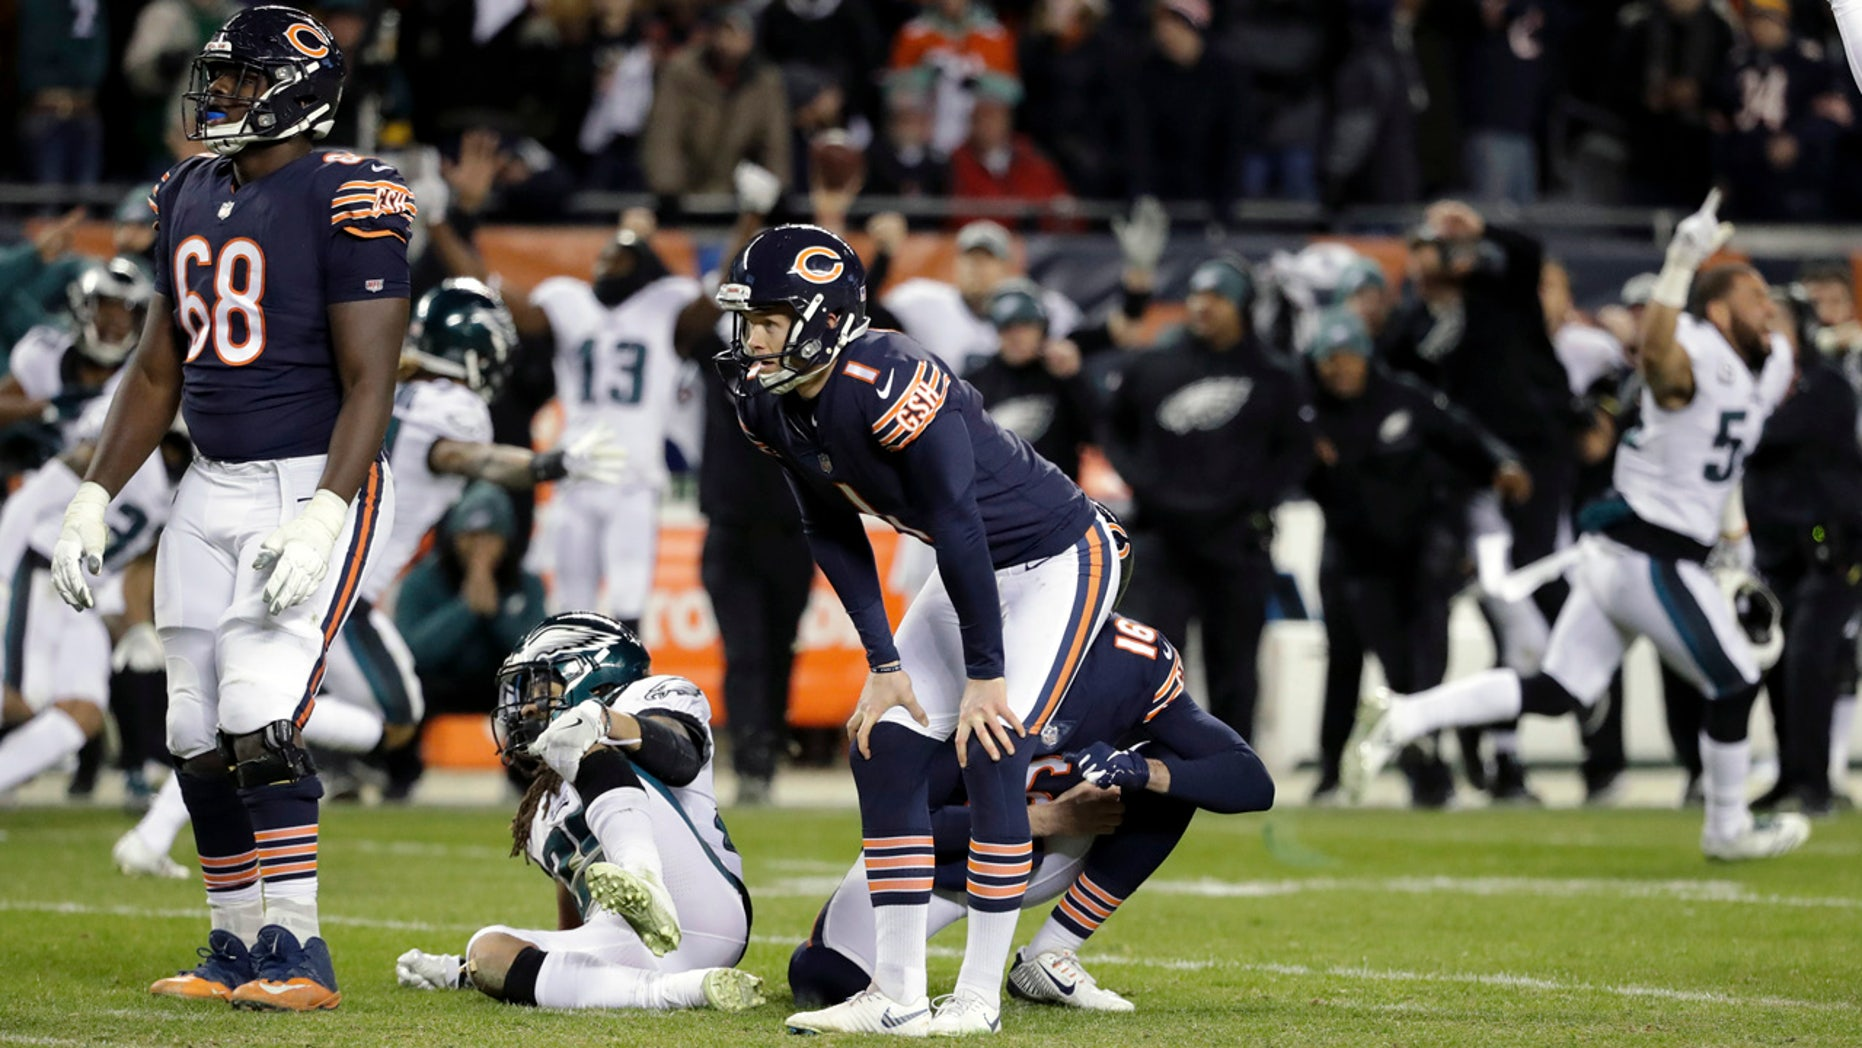 Eagles Edge Bears, Chargers Hold Off Ravens In NFL Wild